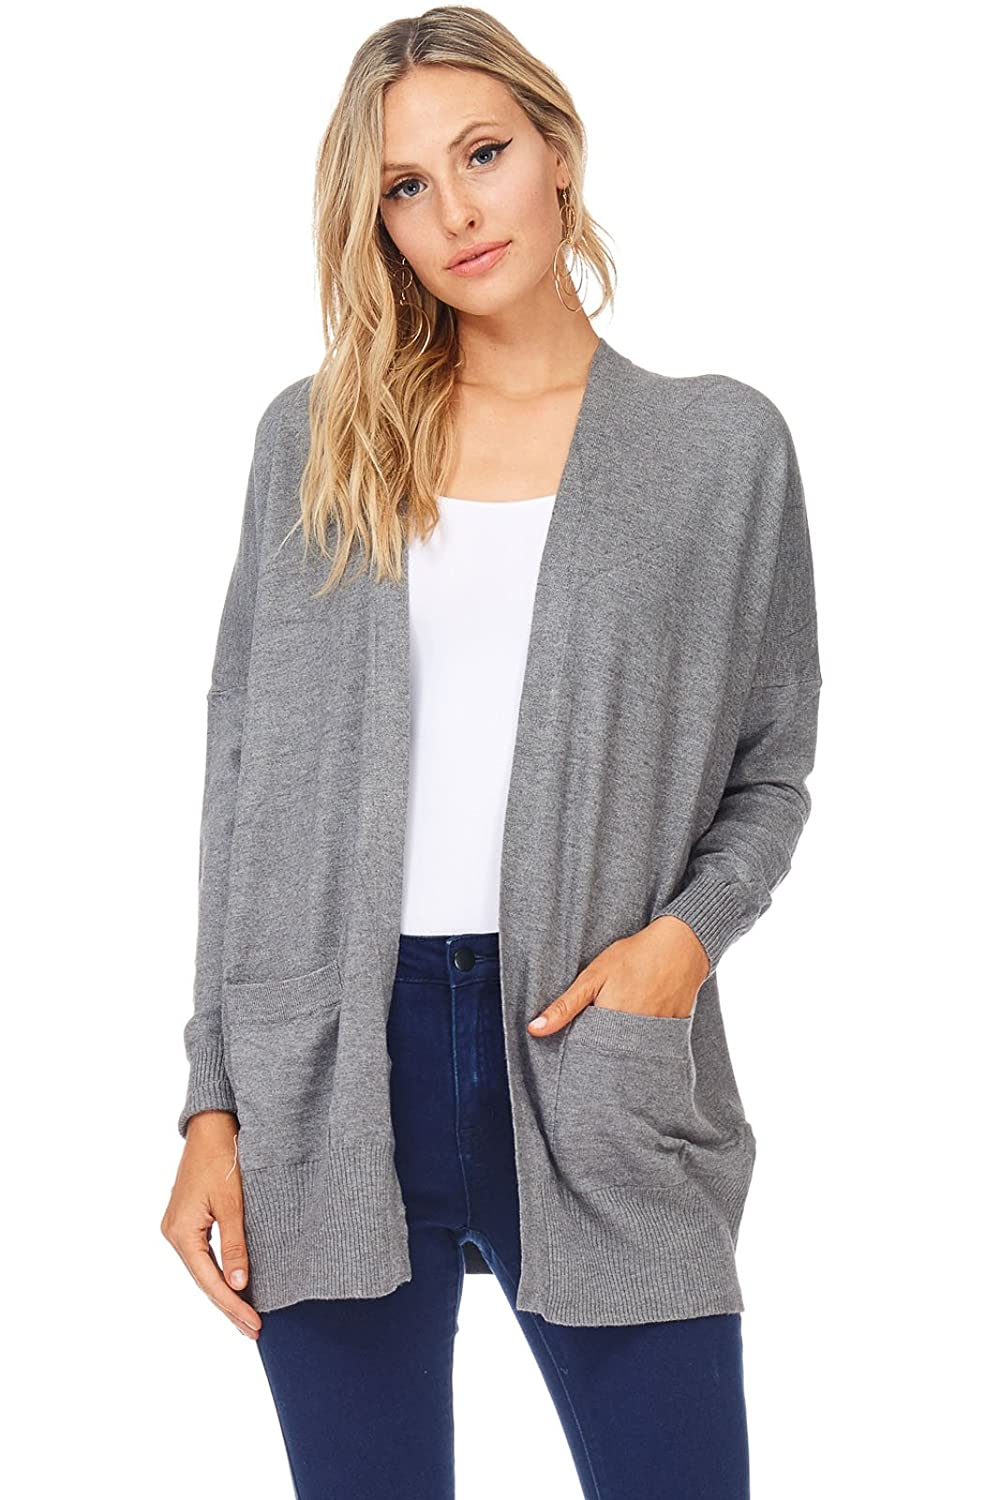 A+D Womens Casual Open Knit Dropped Sleeve Cardigan Sweater Top